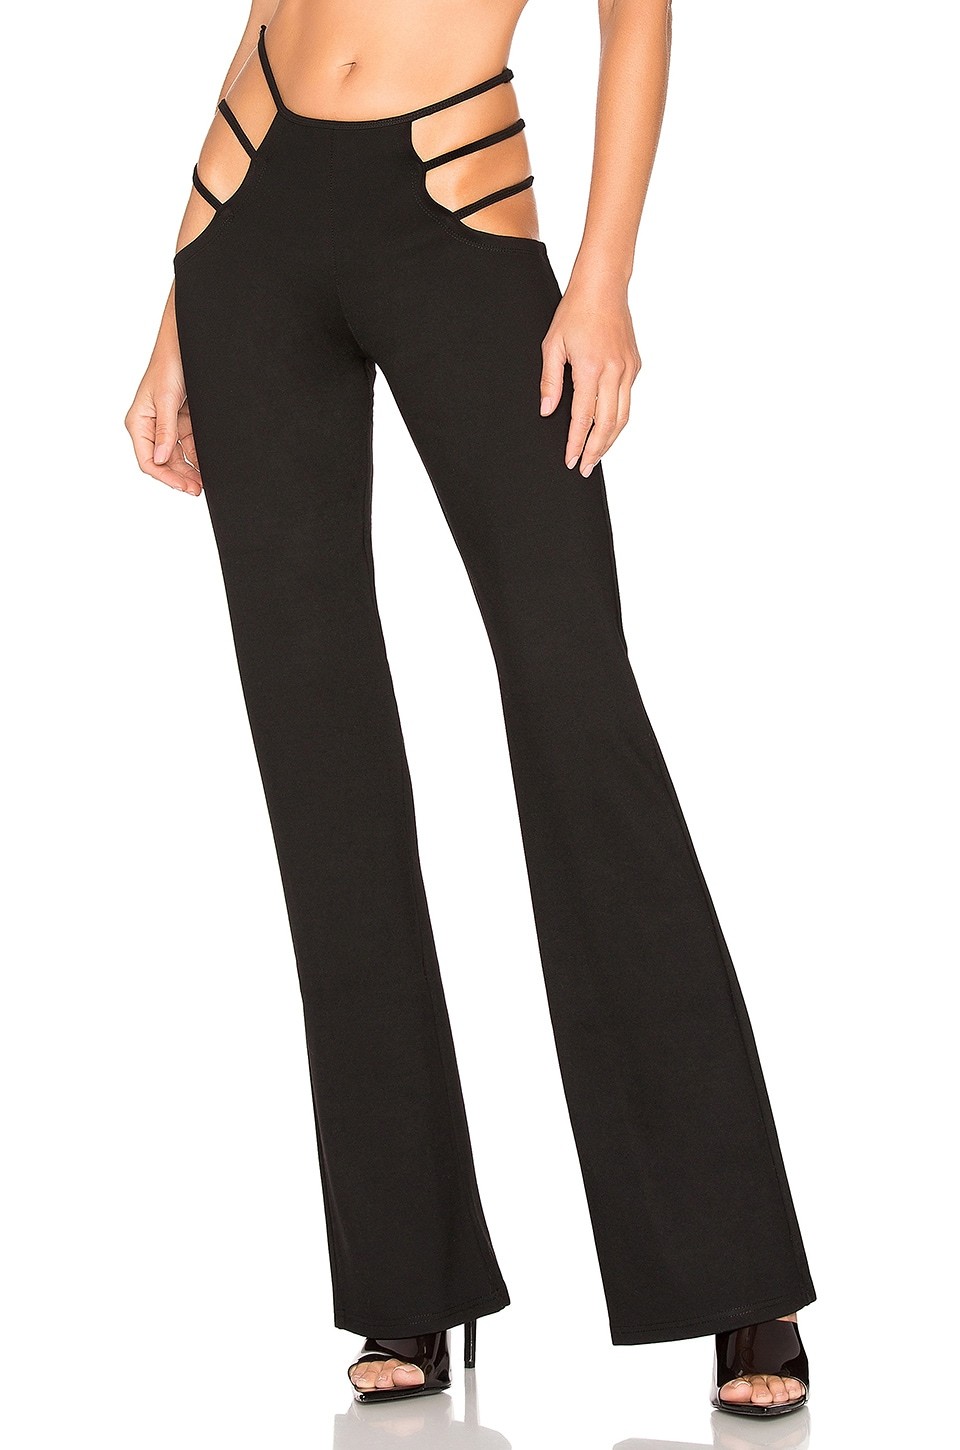 I.AM.GIA Lucid Pant in Black